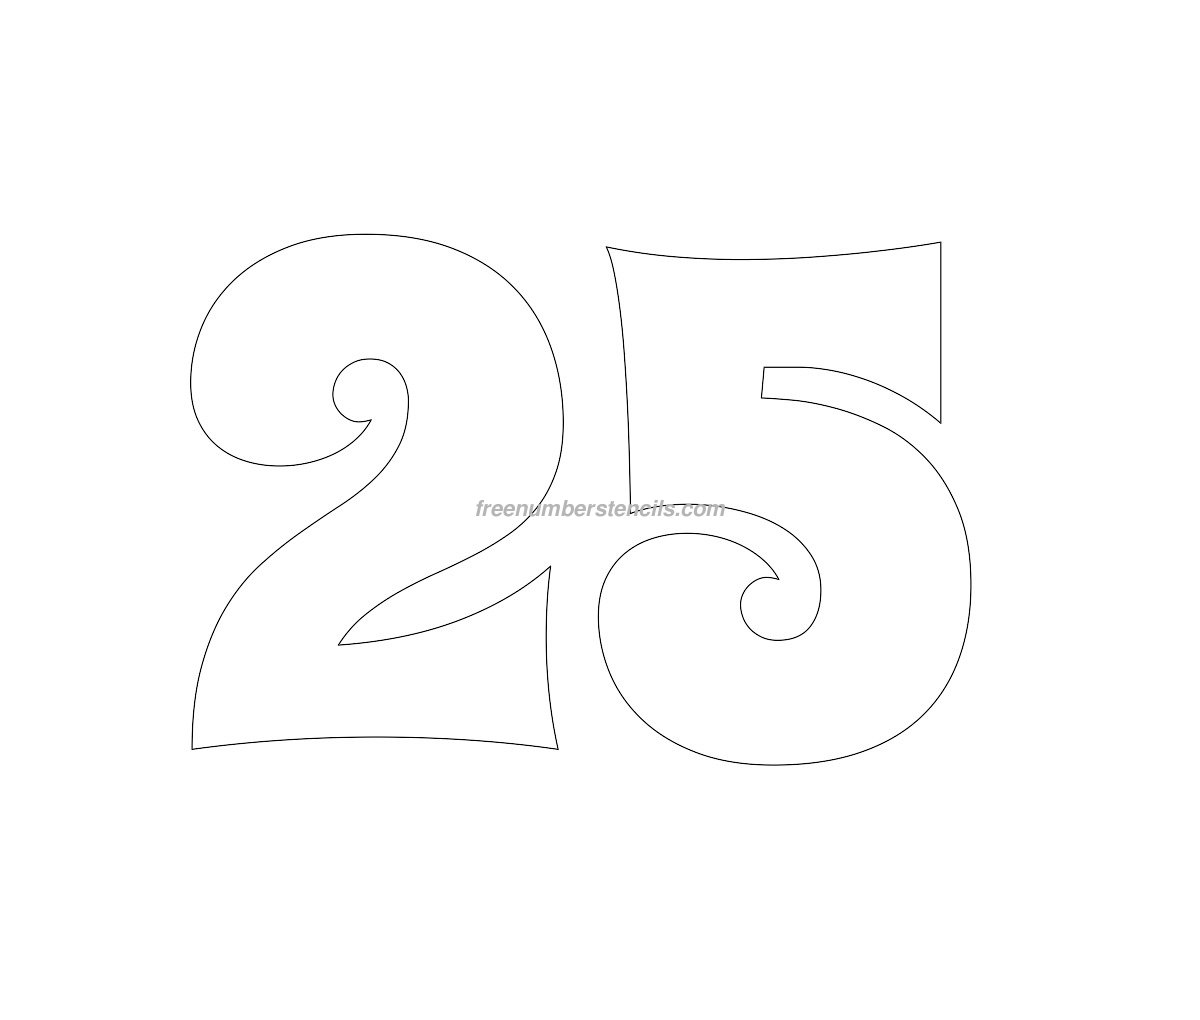 free numbers templates - free groovy 25 number stencil